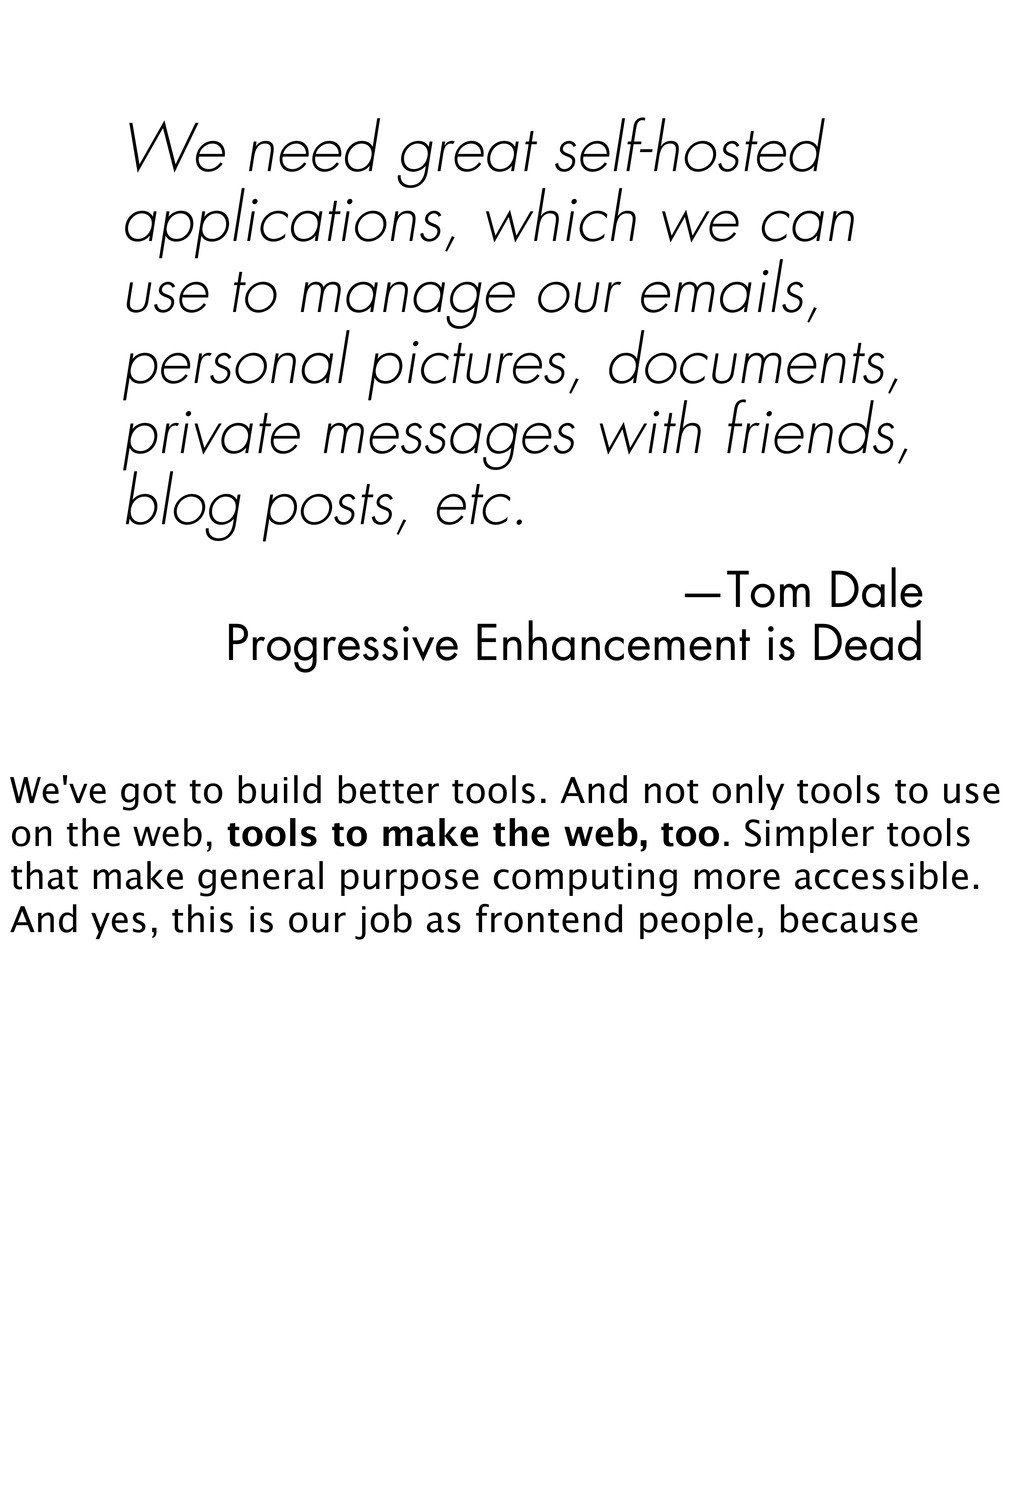 We need great self-hosted applications, which w...